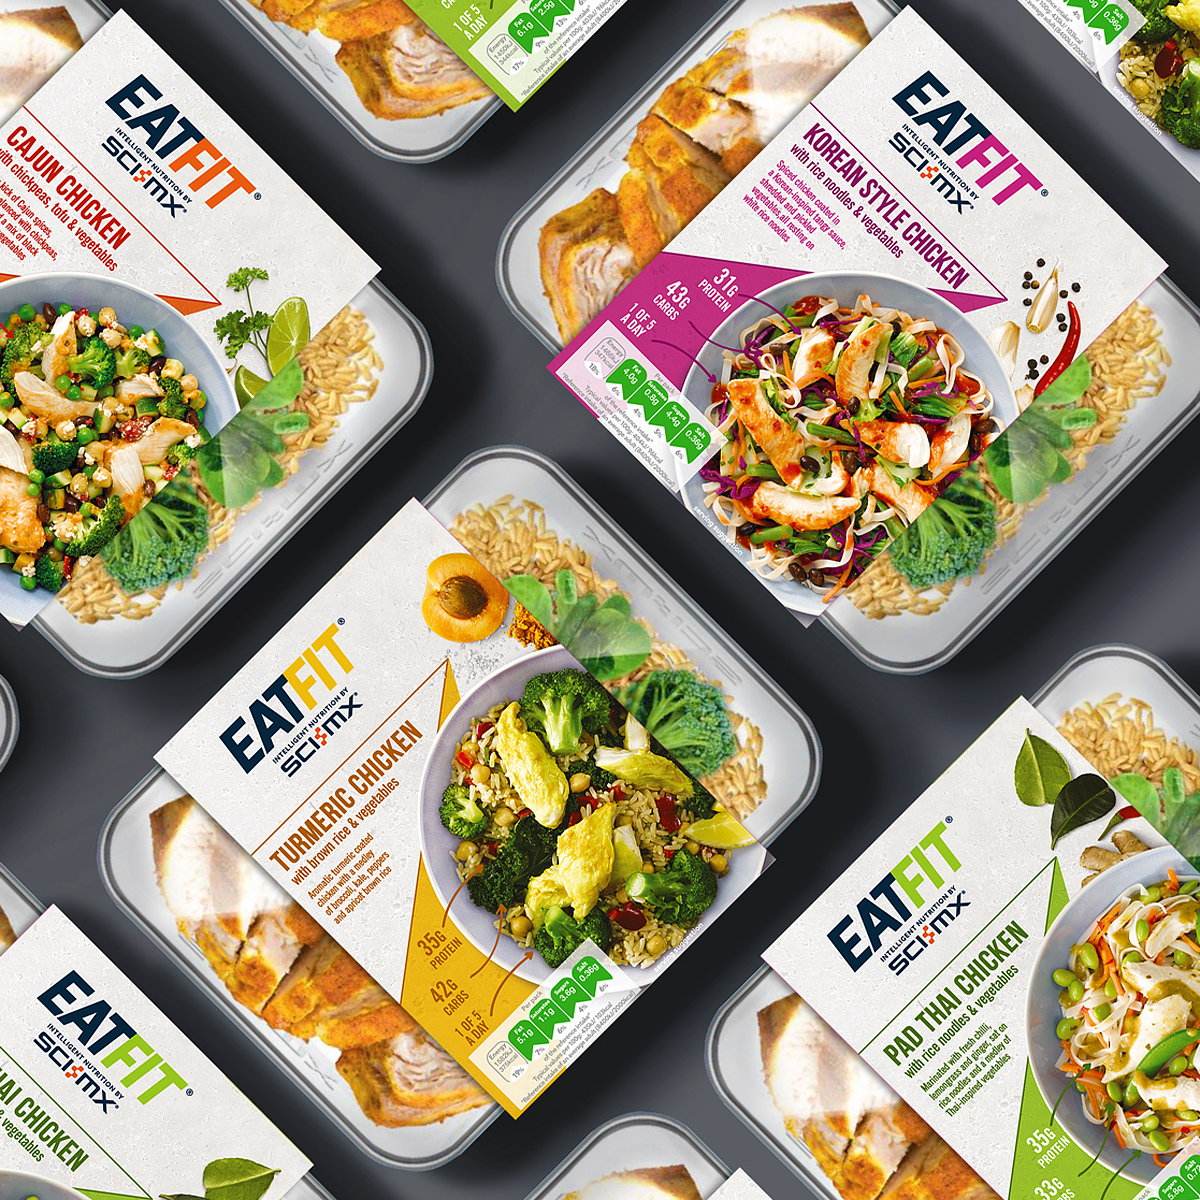 Brandon Designs Innovative Identity for New Fitness-focused Ready-meal Range